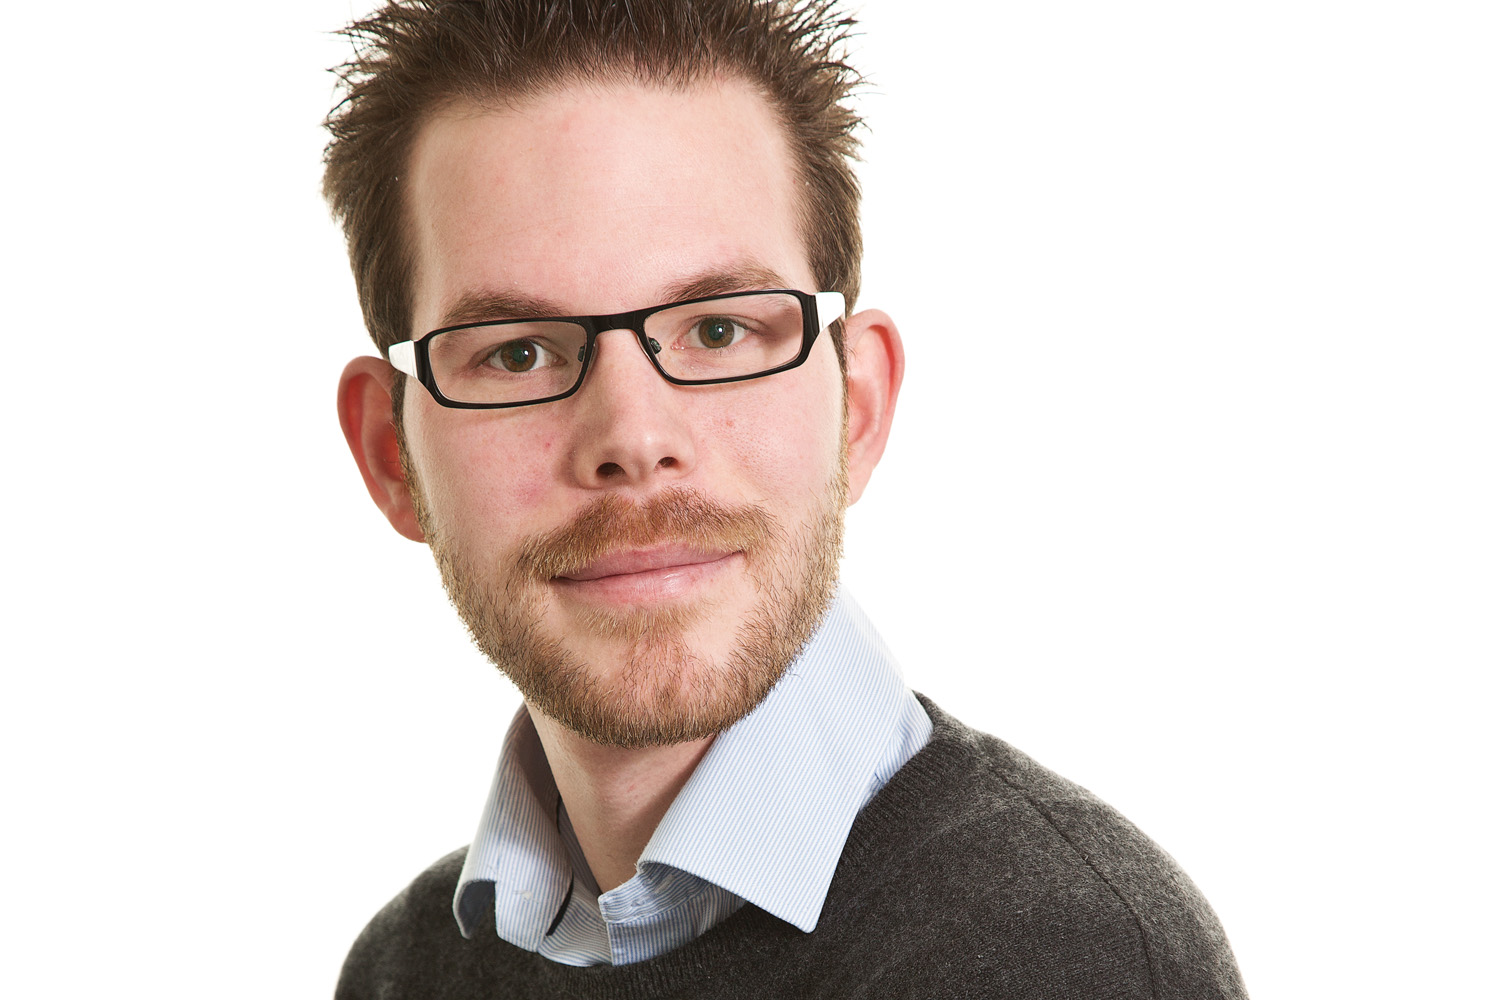 Mens_Commercial_Headshot_Photographer_Newbury_Berkshire_010.jpg